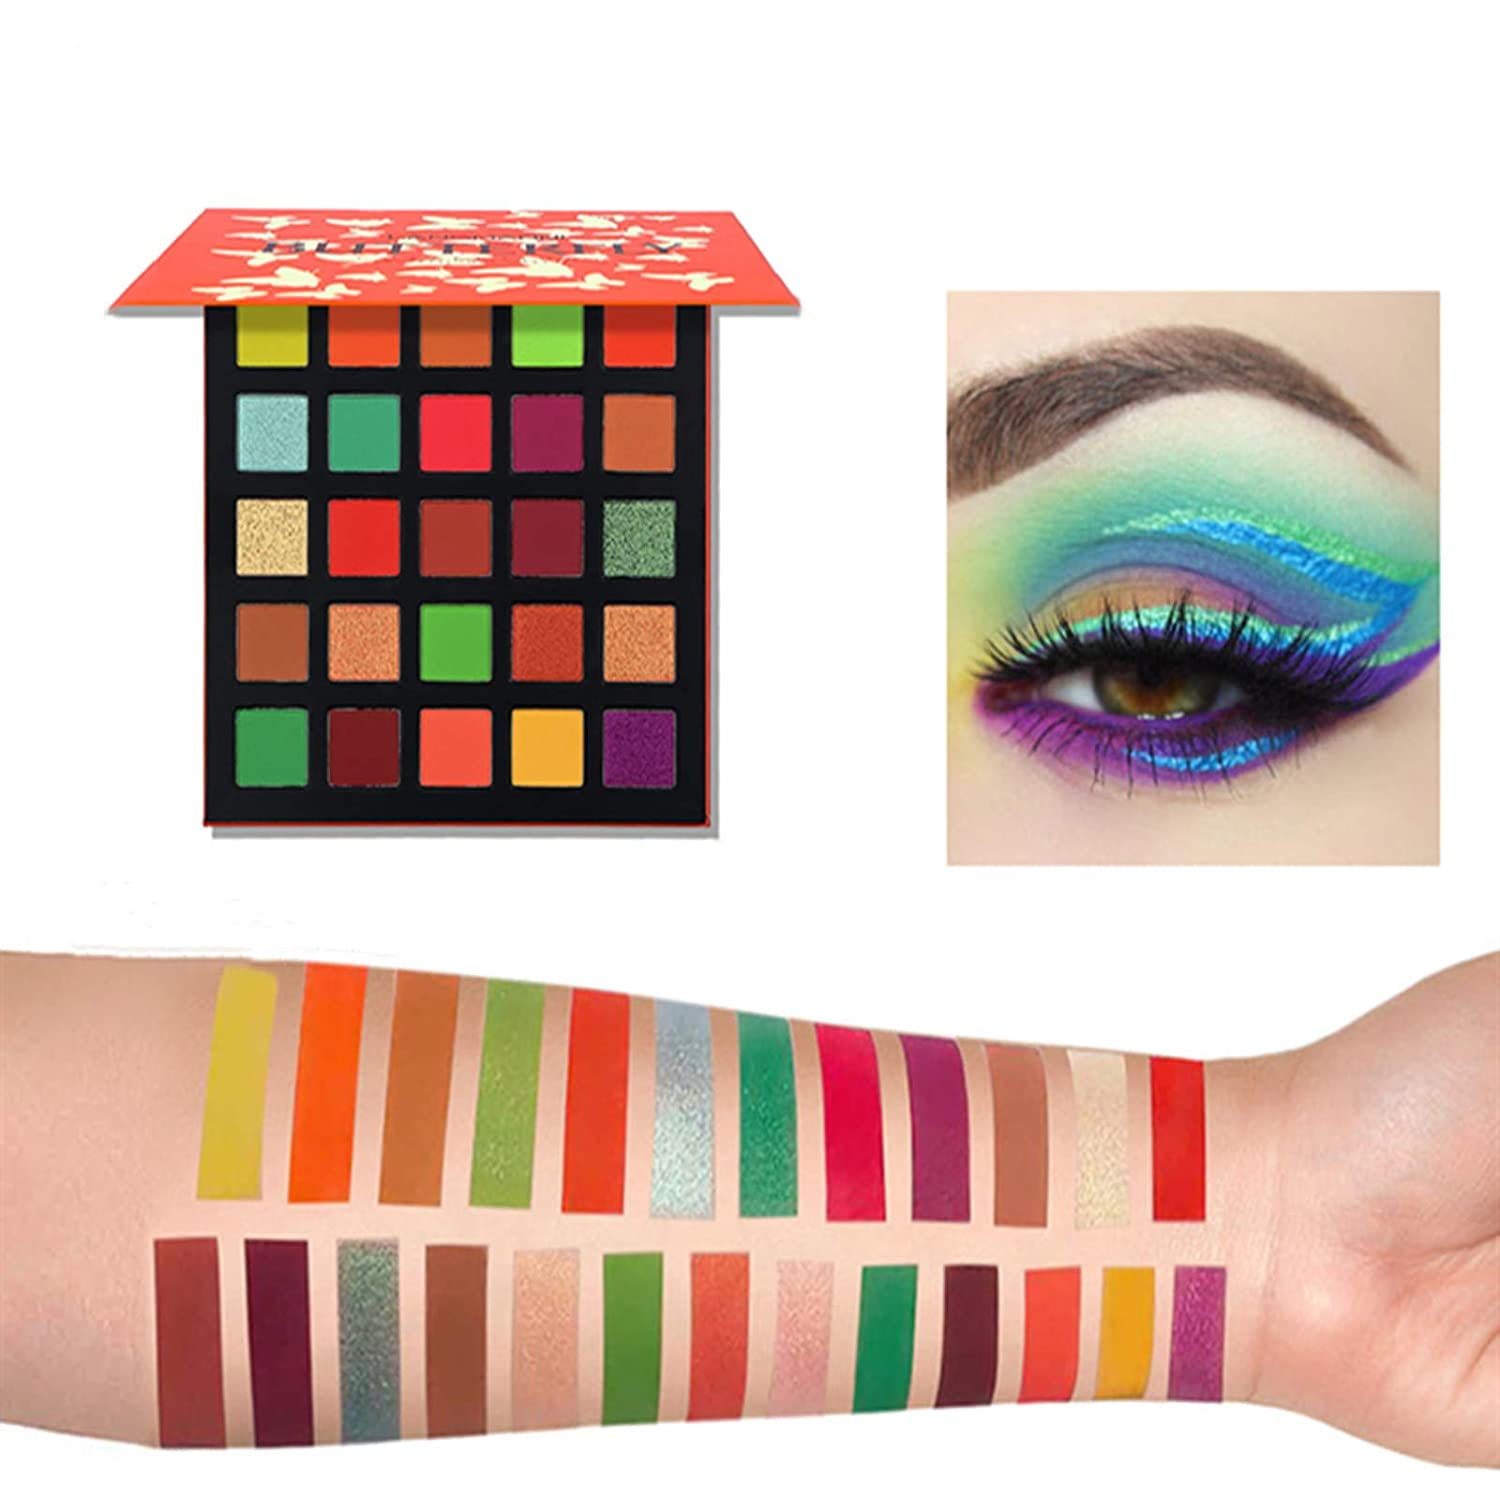 25 Colors Eyeshadow Palette, Shimmer Glitter and Matte Eyeshadow Highly Pigmented Waterproof Long Lasting Eye Shadow Vibrant Colorful Eye Cosmetic Make Palette (BUTTERFLY)